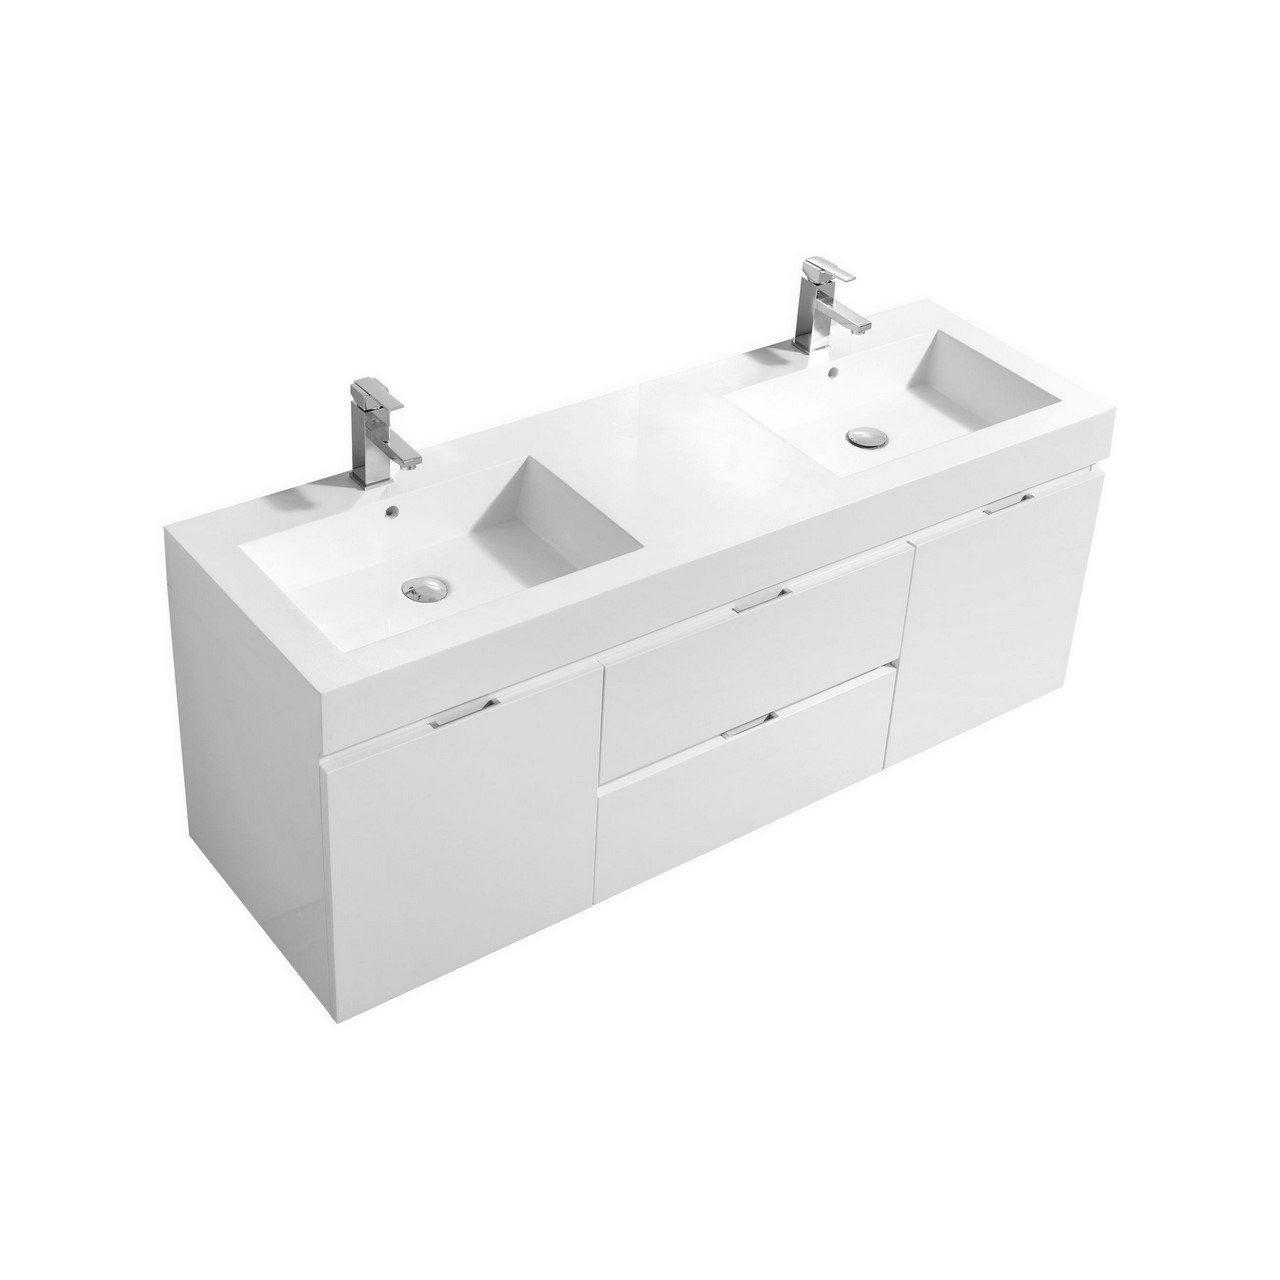 Bliss 60 Quot High Gloss White Wall Mount Double Sink Bathroom